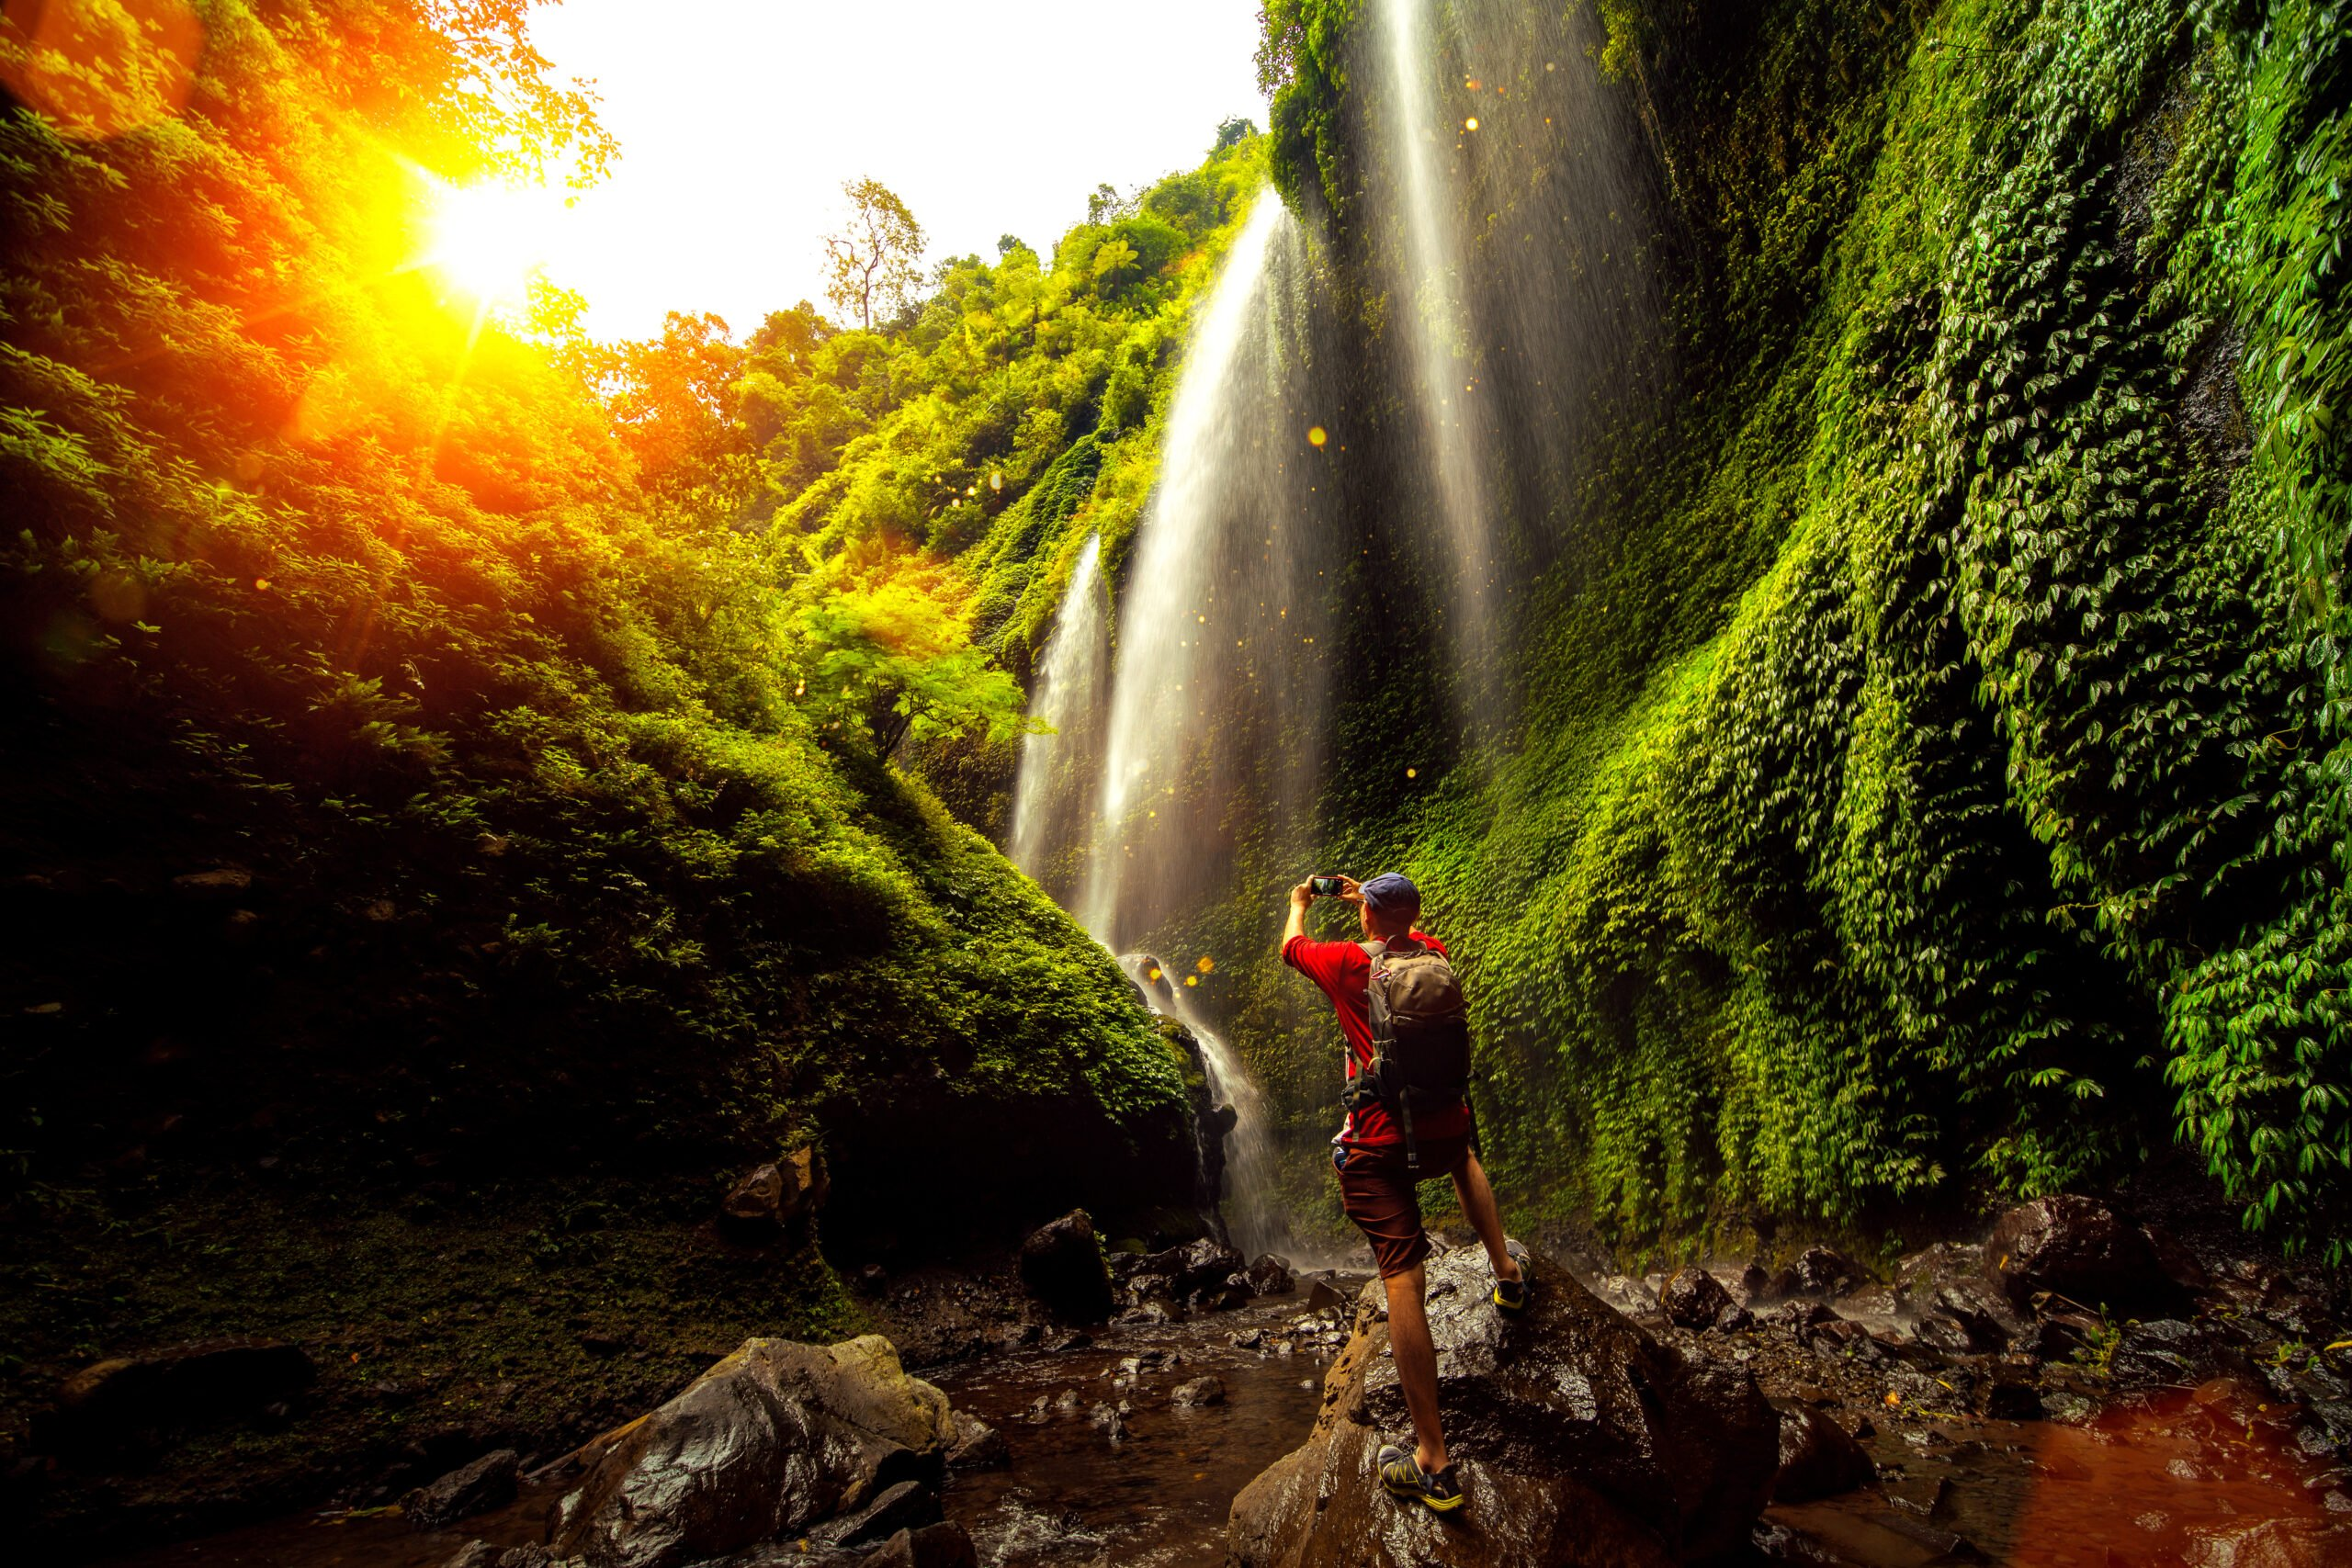 Discover The Amazing Madakaripura Waterfall In Our Mount Bromo Sunrise And Madakaripura Waterfall Tour From Surabaya:malang